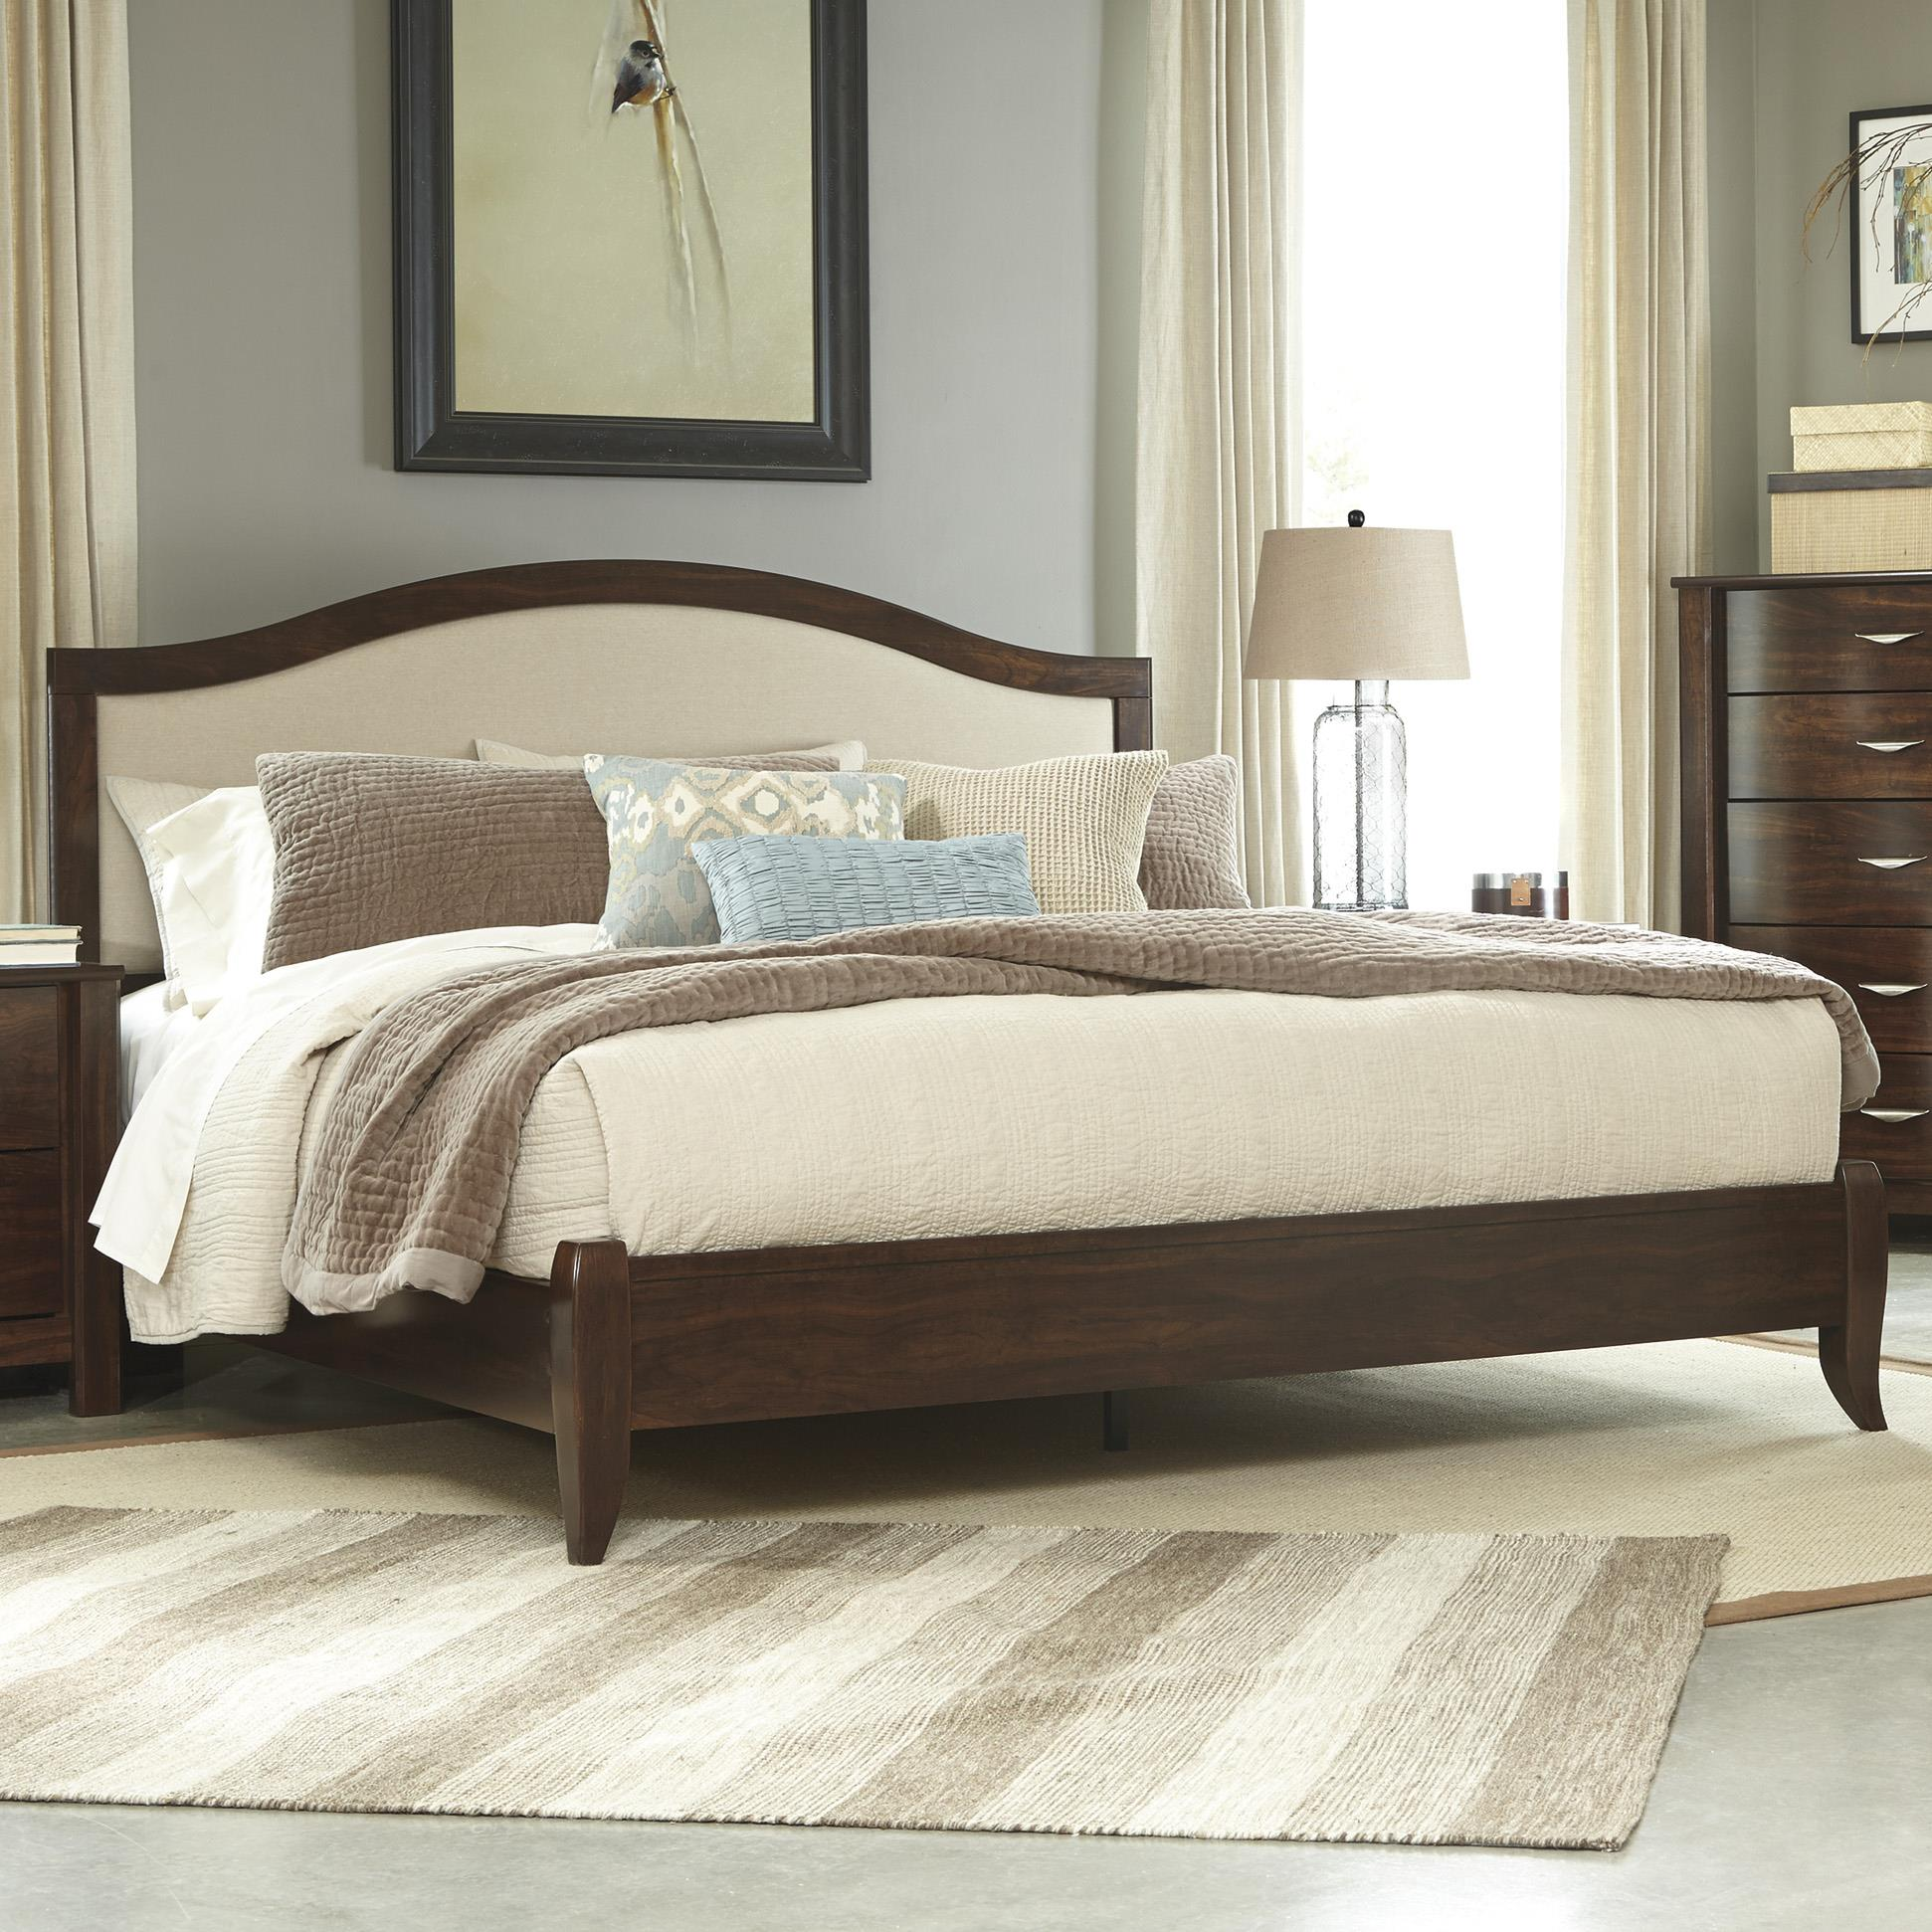 Signature Design by Ashley Corraya King Upholstered Bed - Item Number: B428-58+56